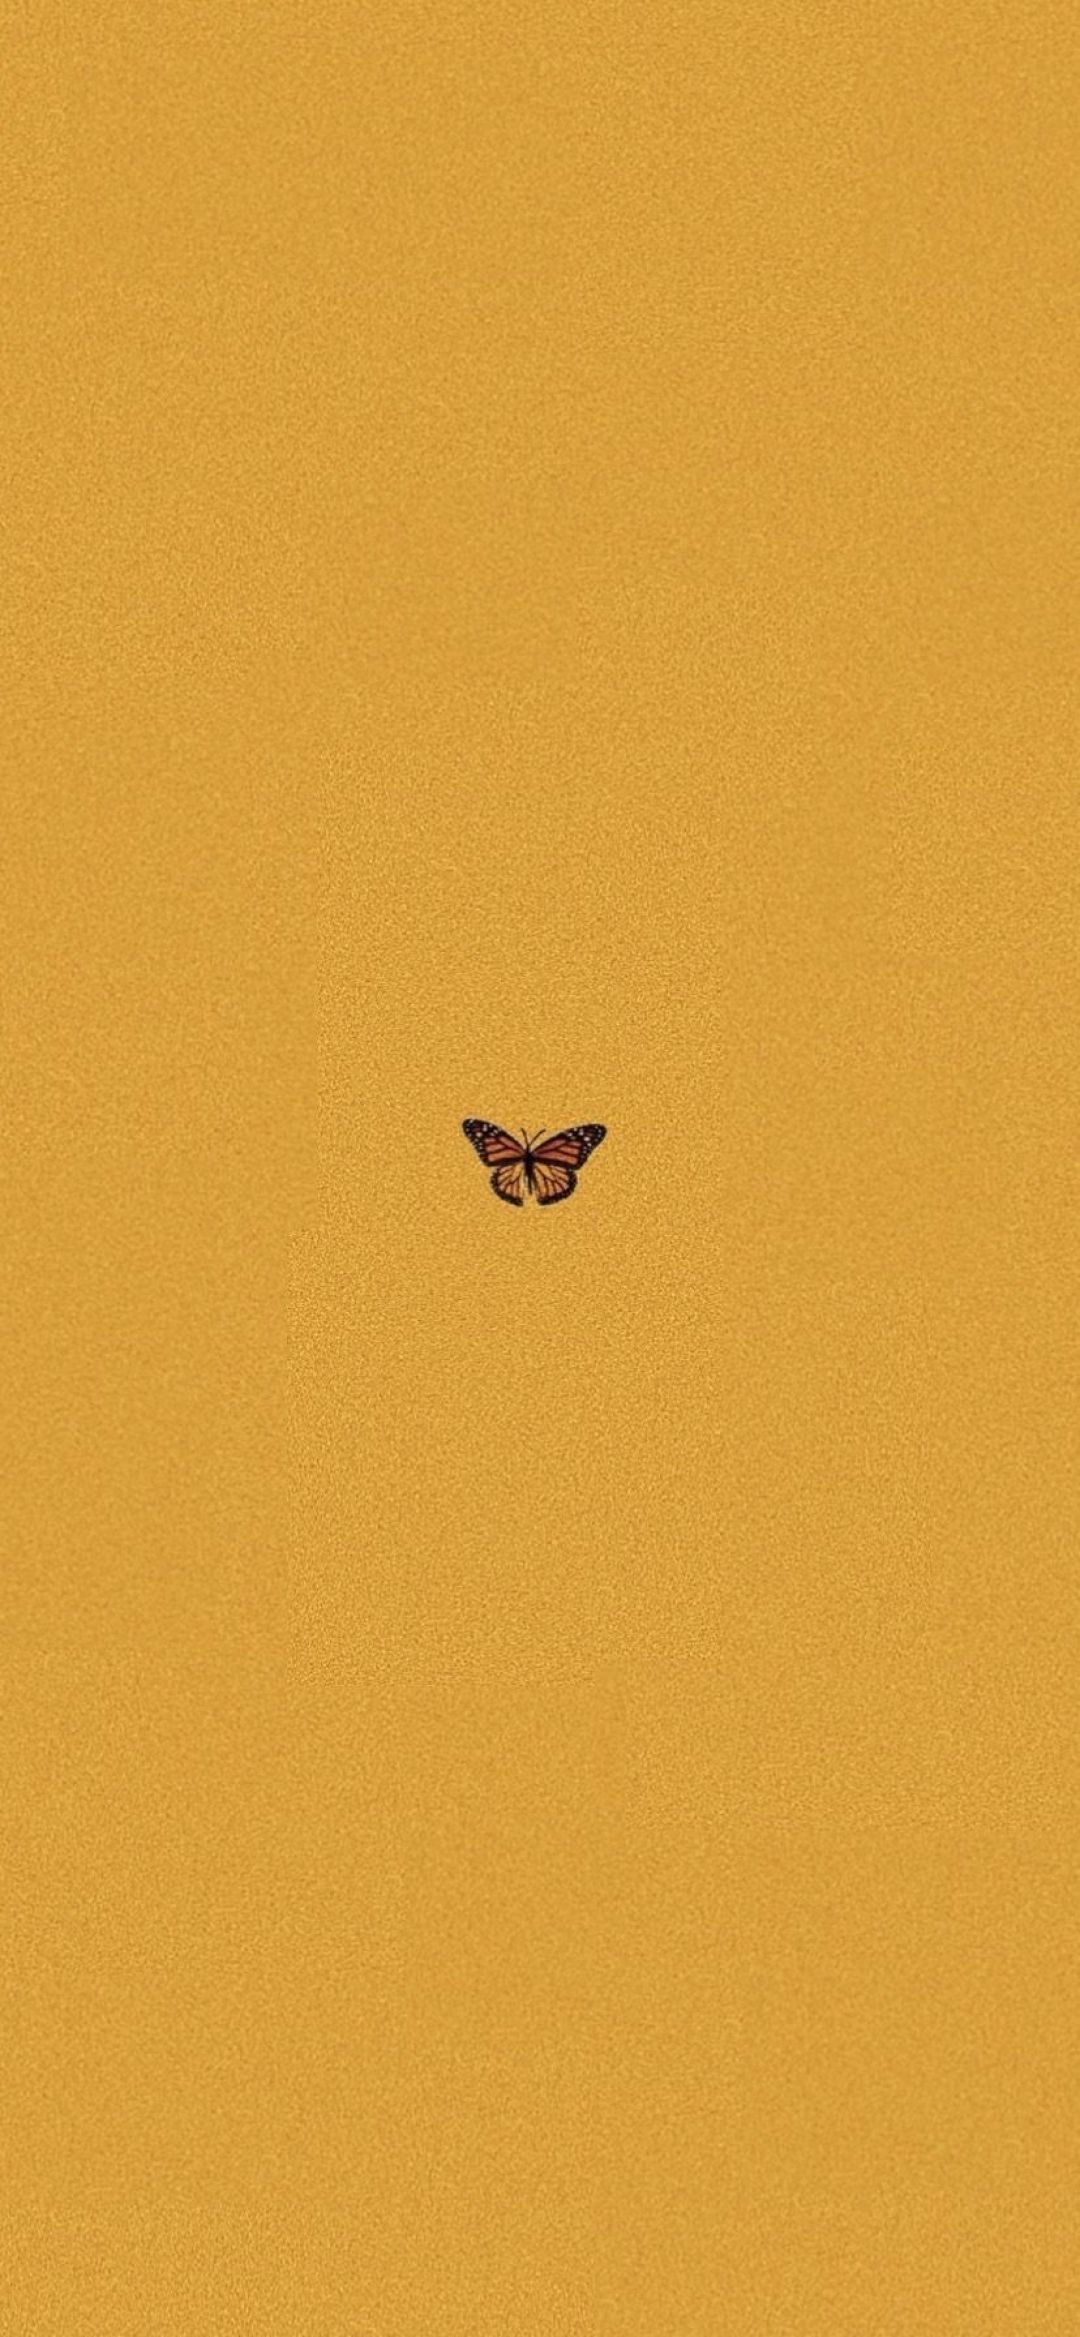 Butterfly Wallpapers Aesthetic